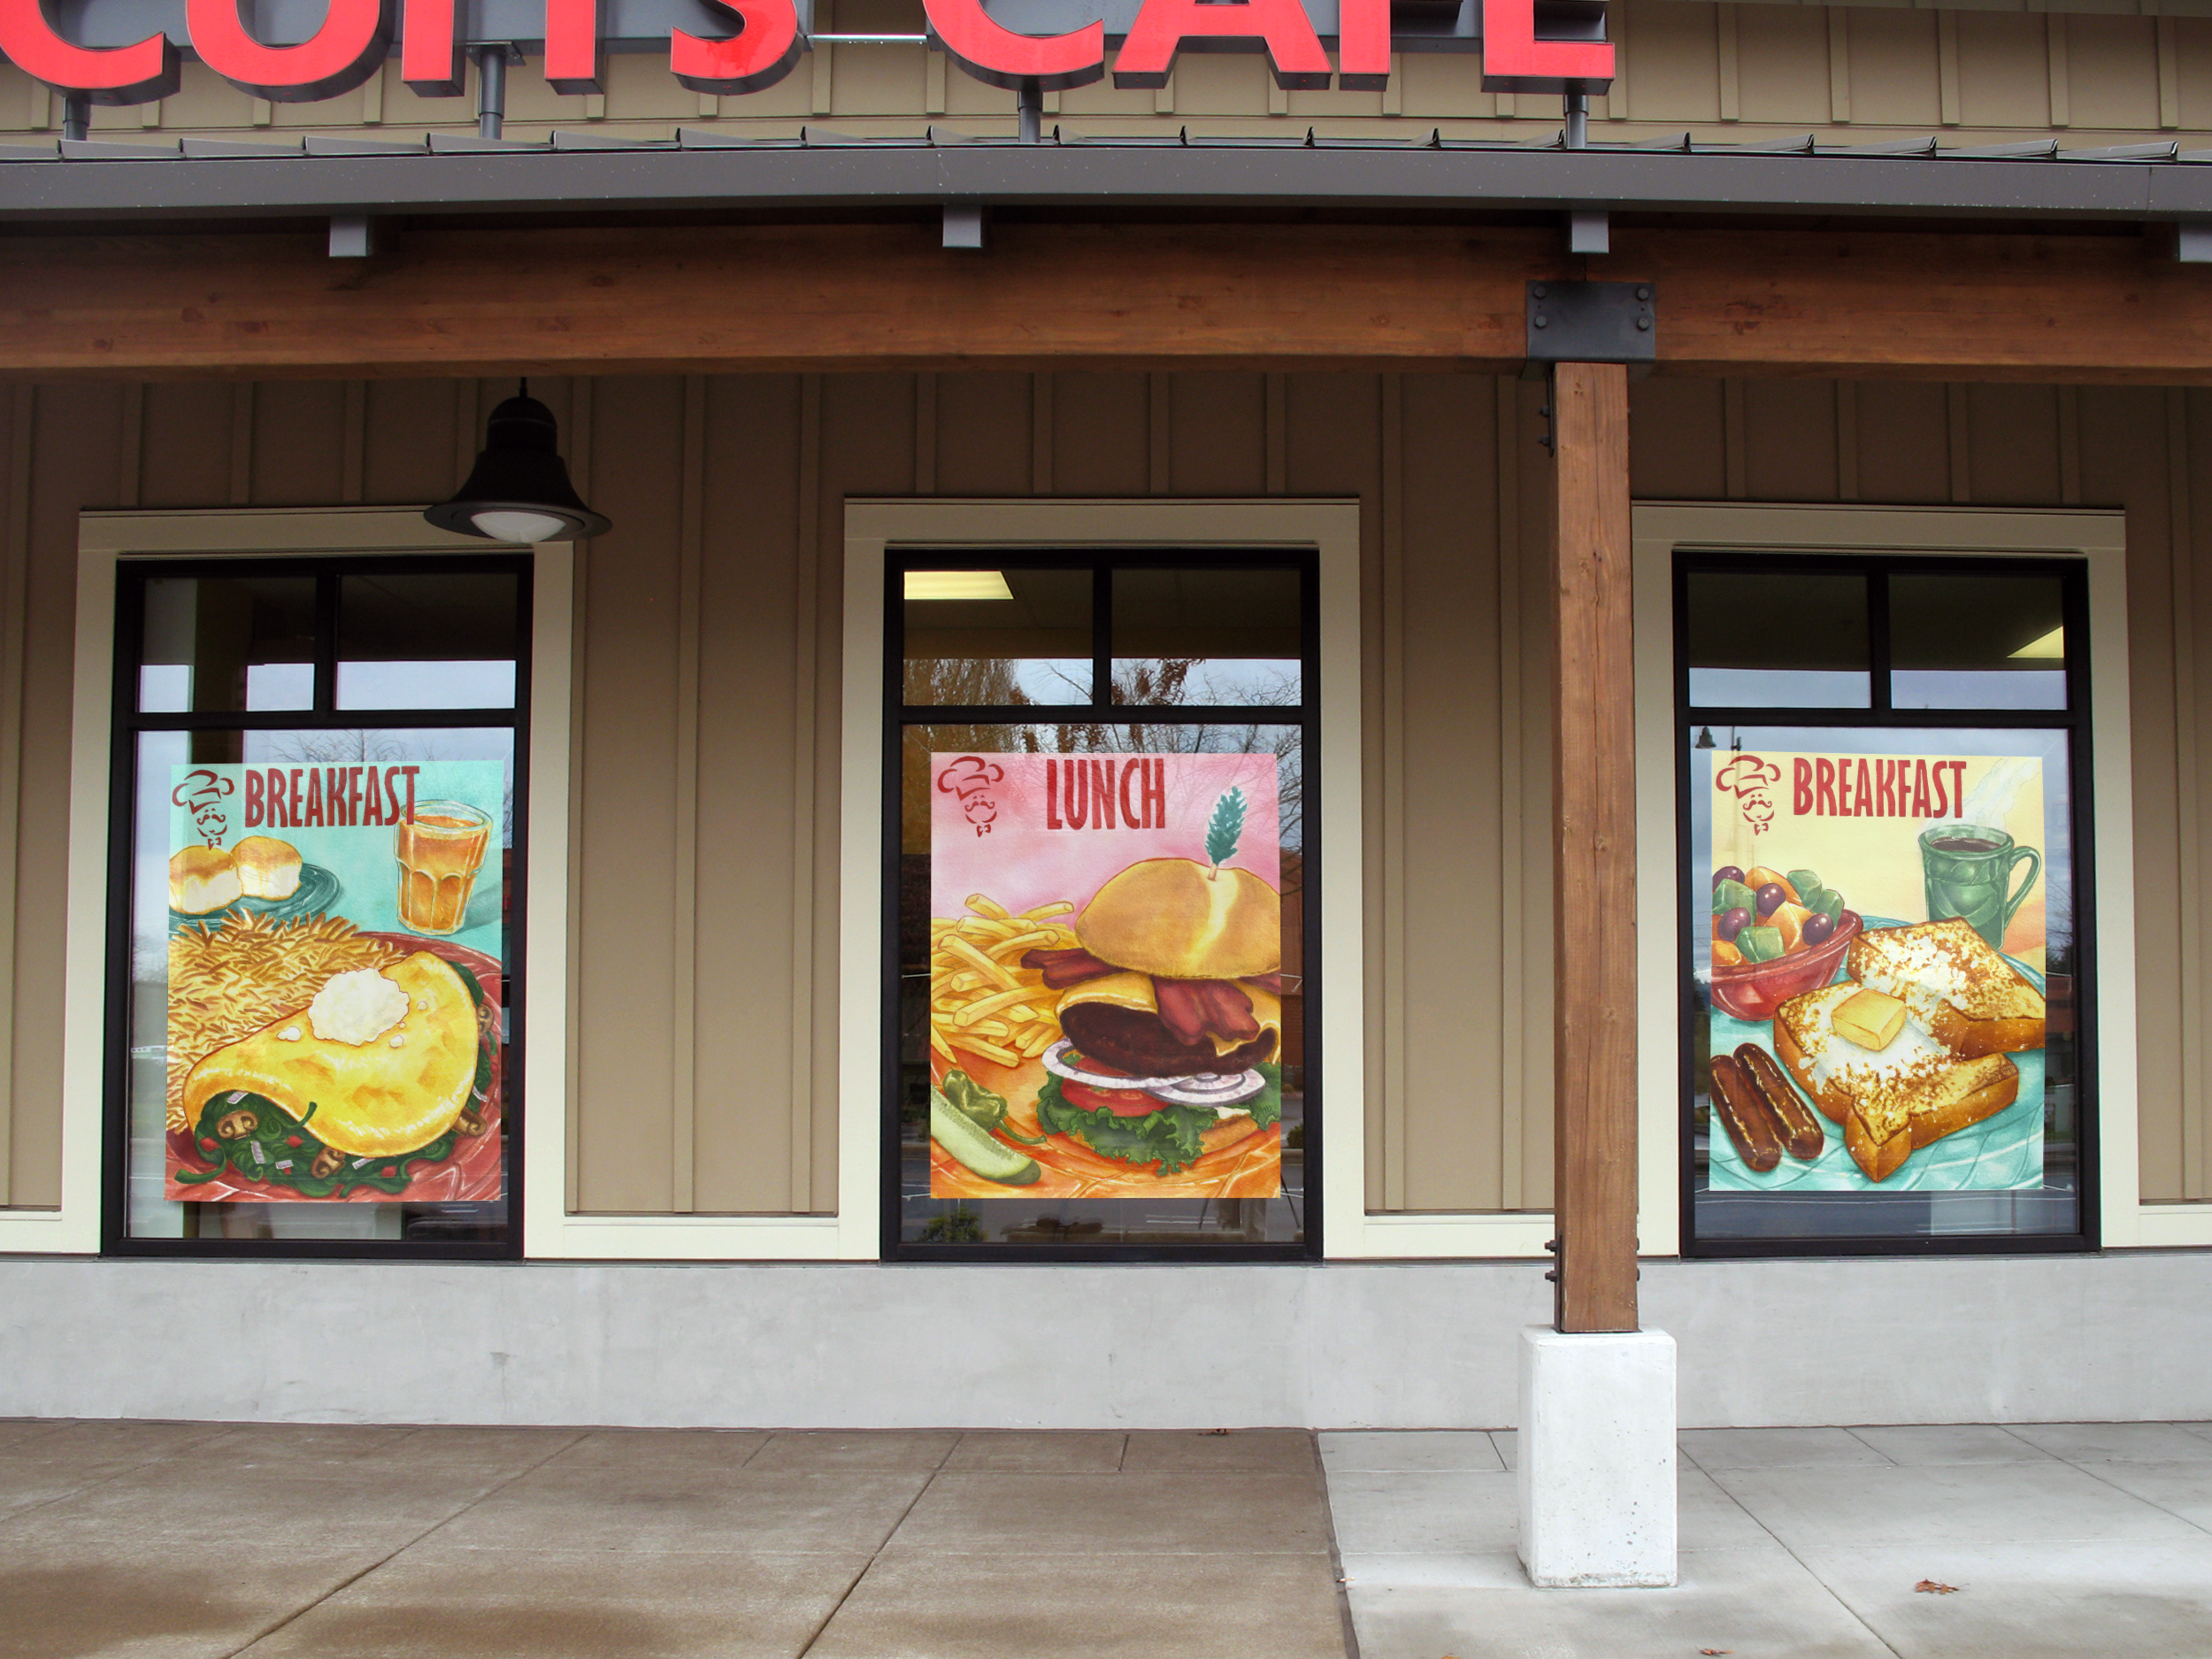 The Biscuits Cafe Series was custom designed and printed on 4'x5' vinyl banners and installed in the Wilsonville location's windows.